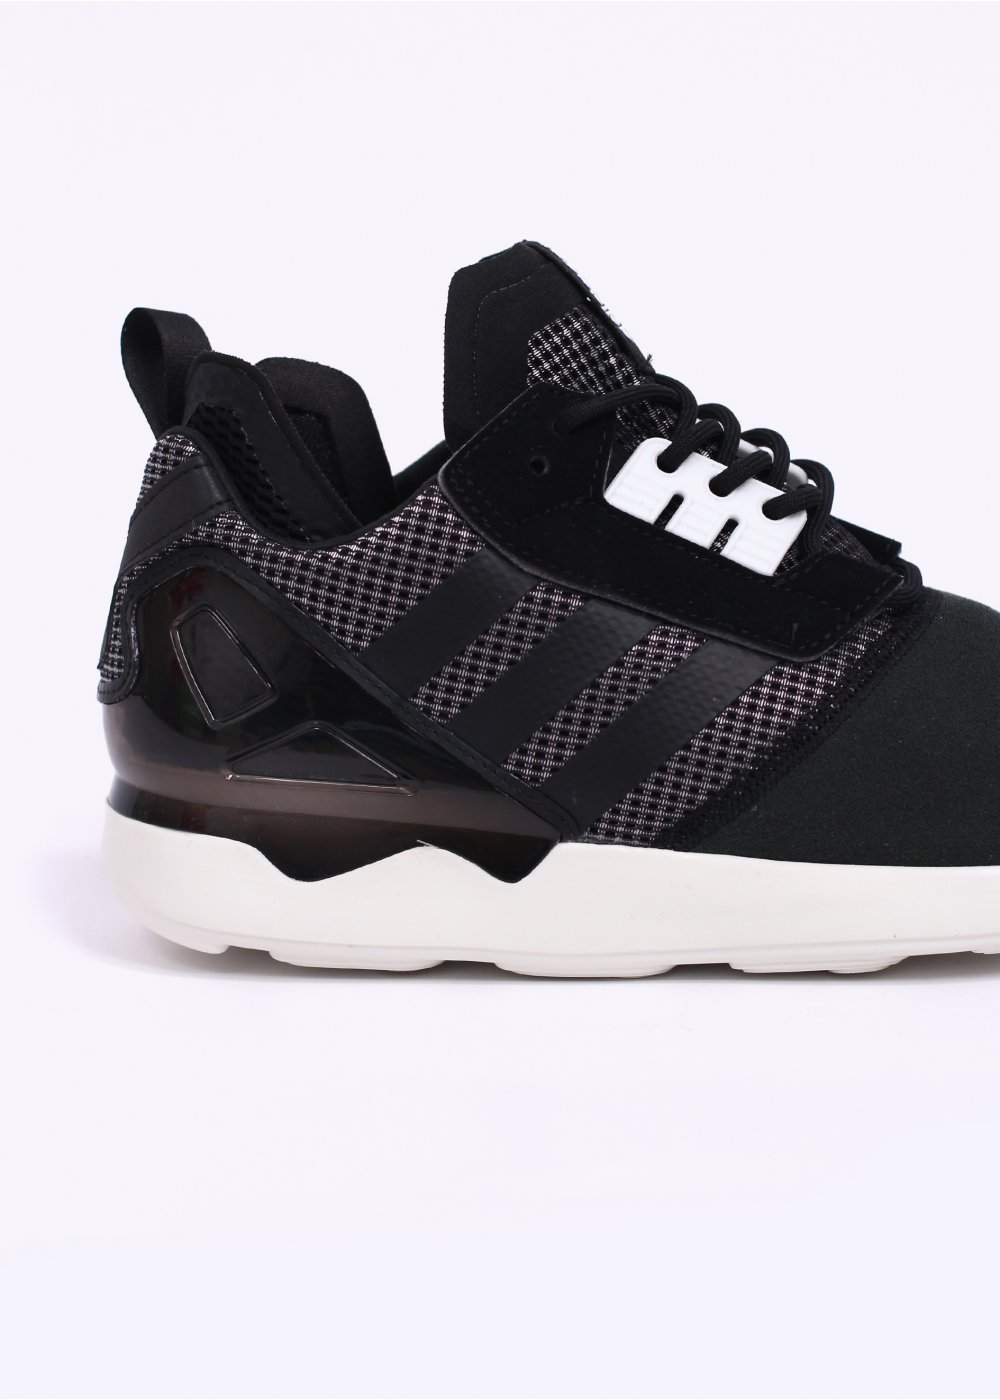 adidas zx 8000 trainers